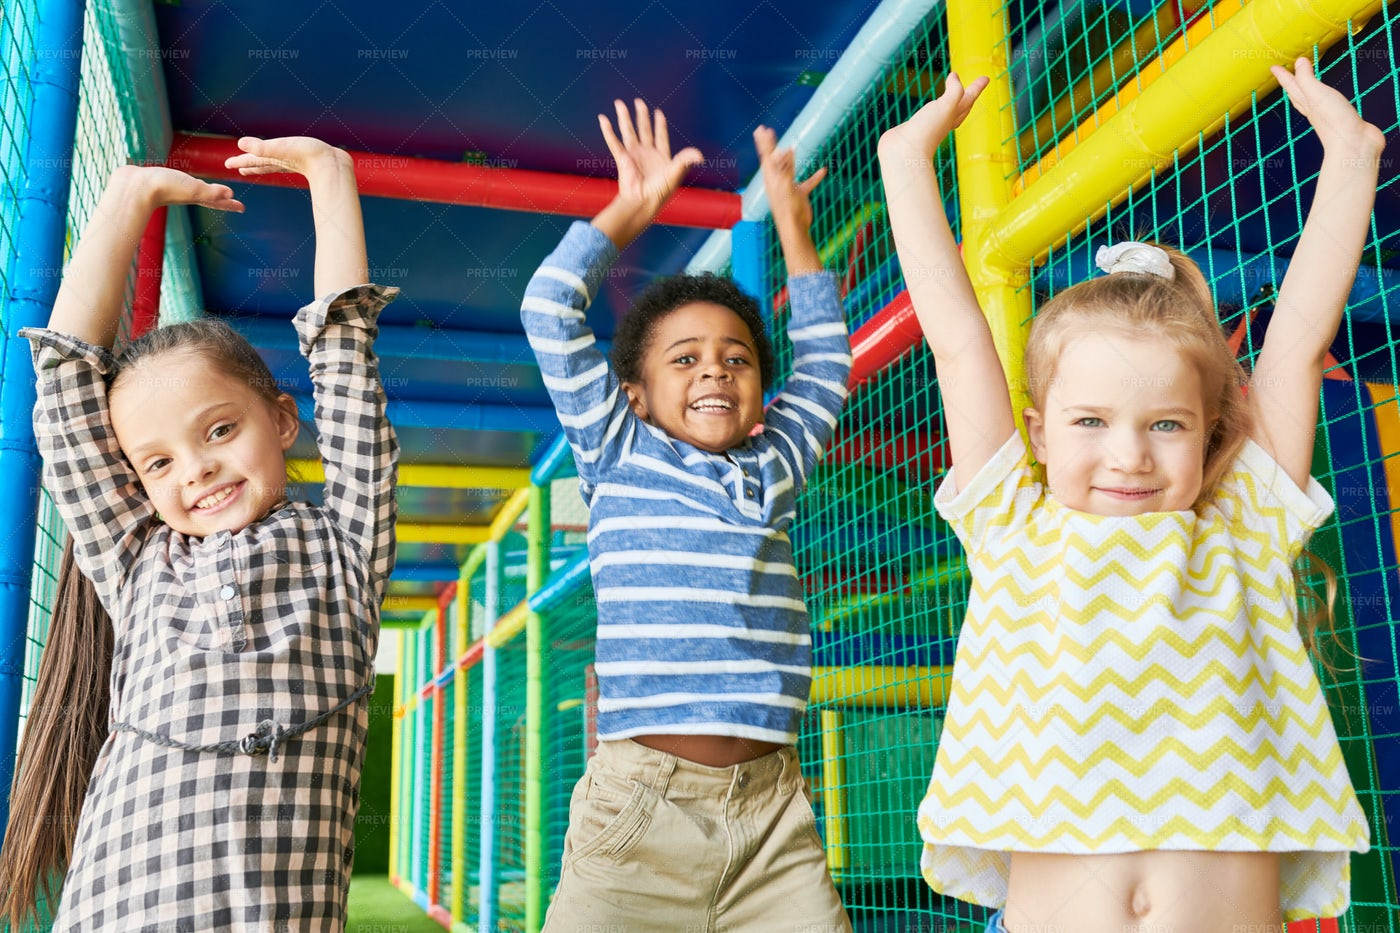 Excited Children In Play Center: Stock Photos